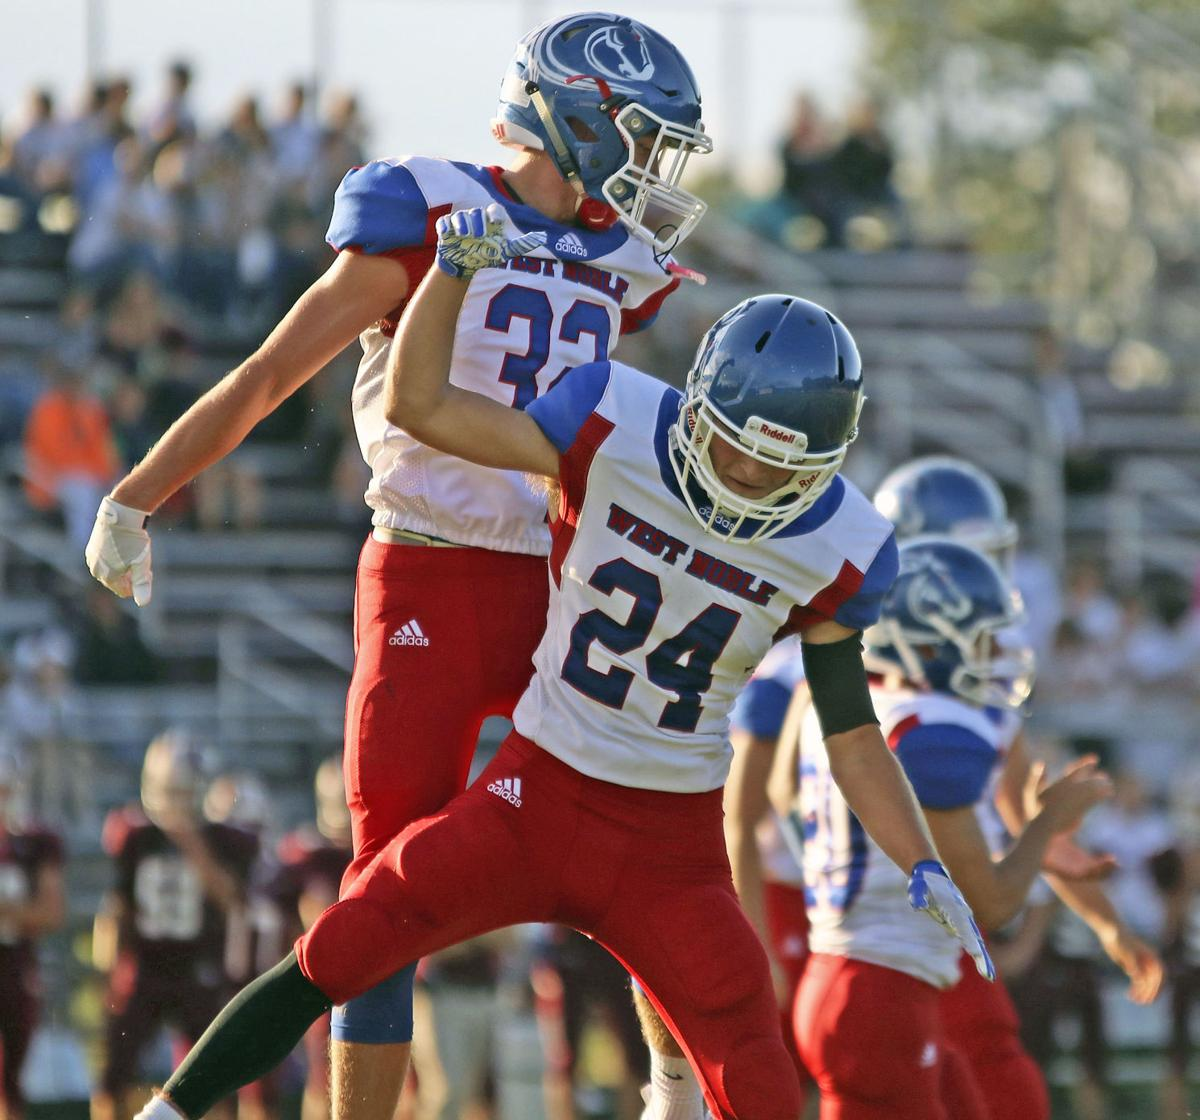 West Noble vs. Central Noble game pictures 2